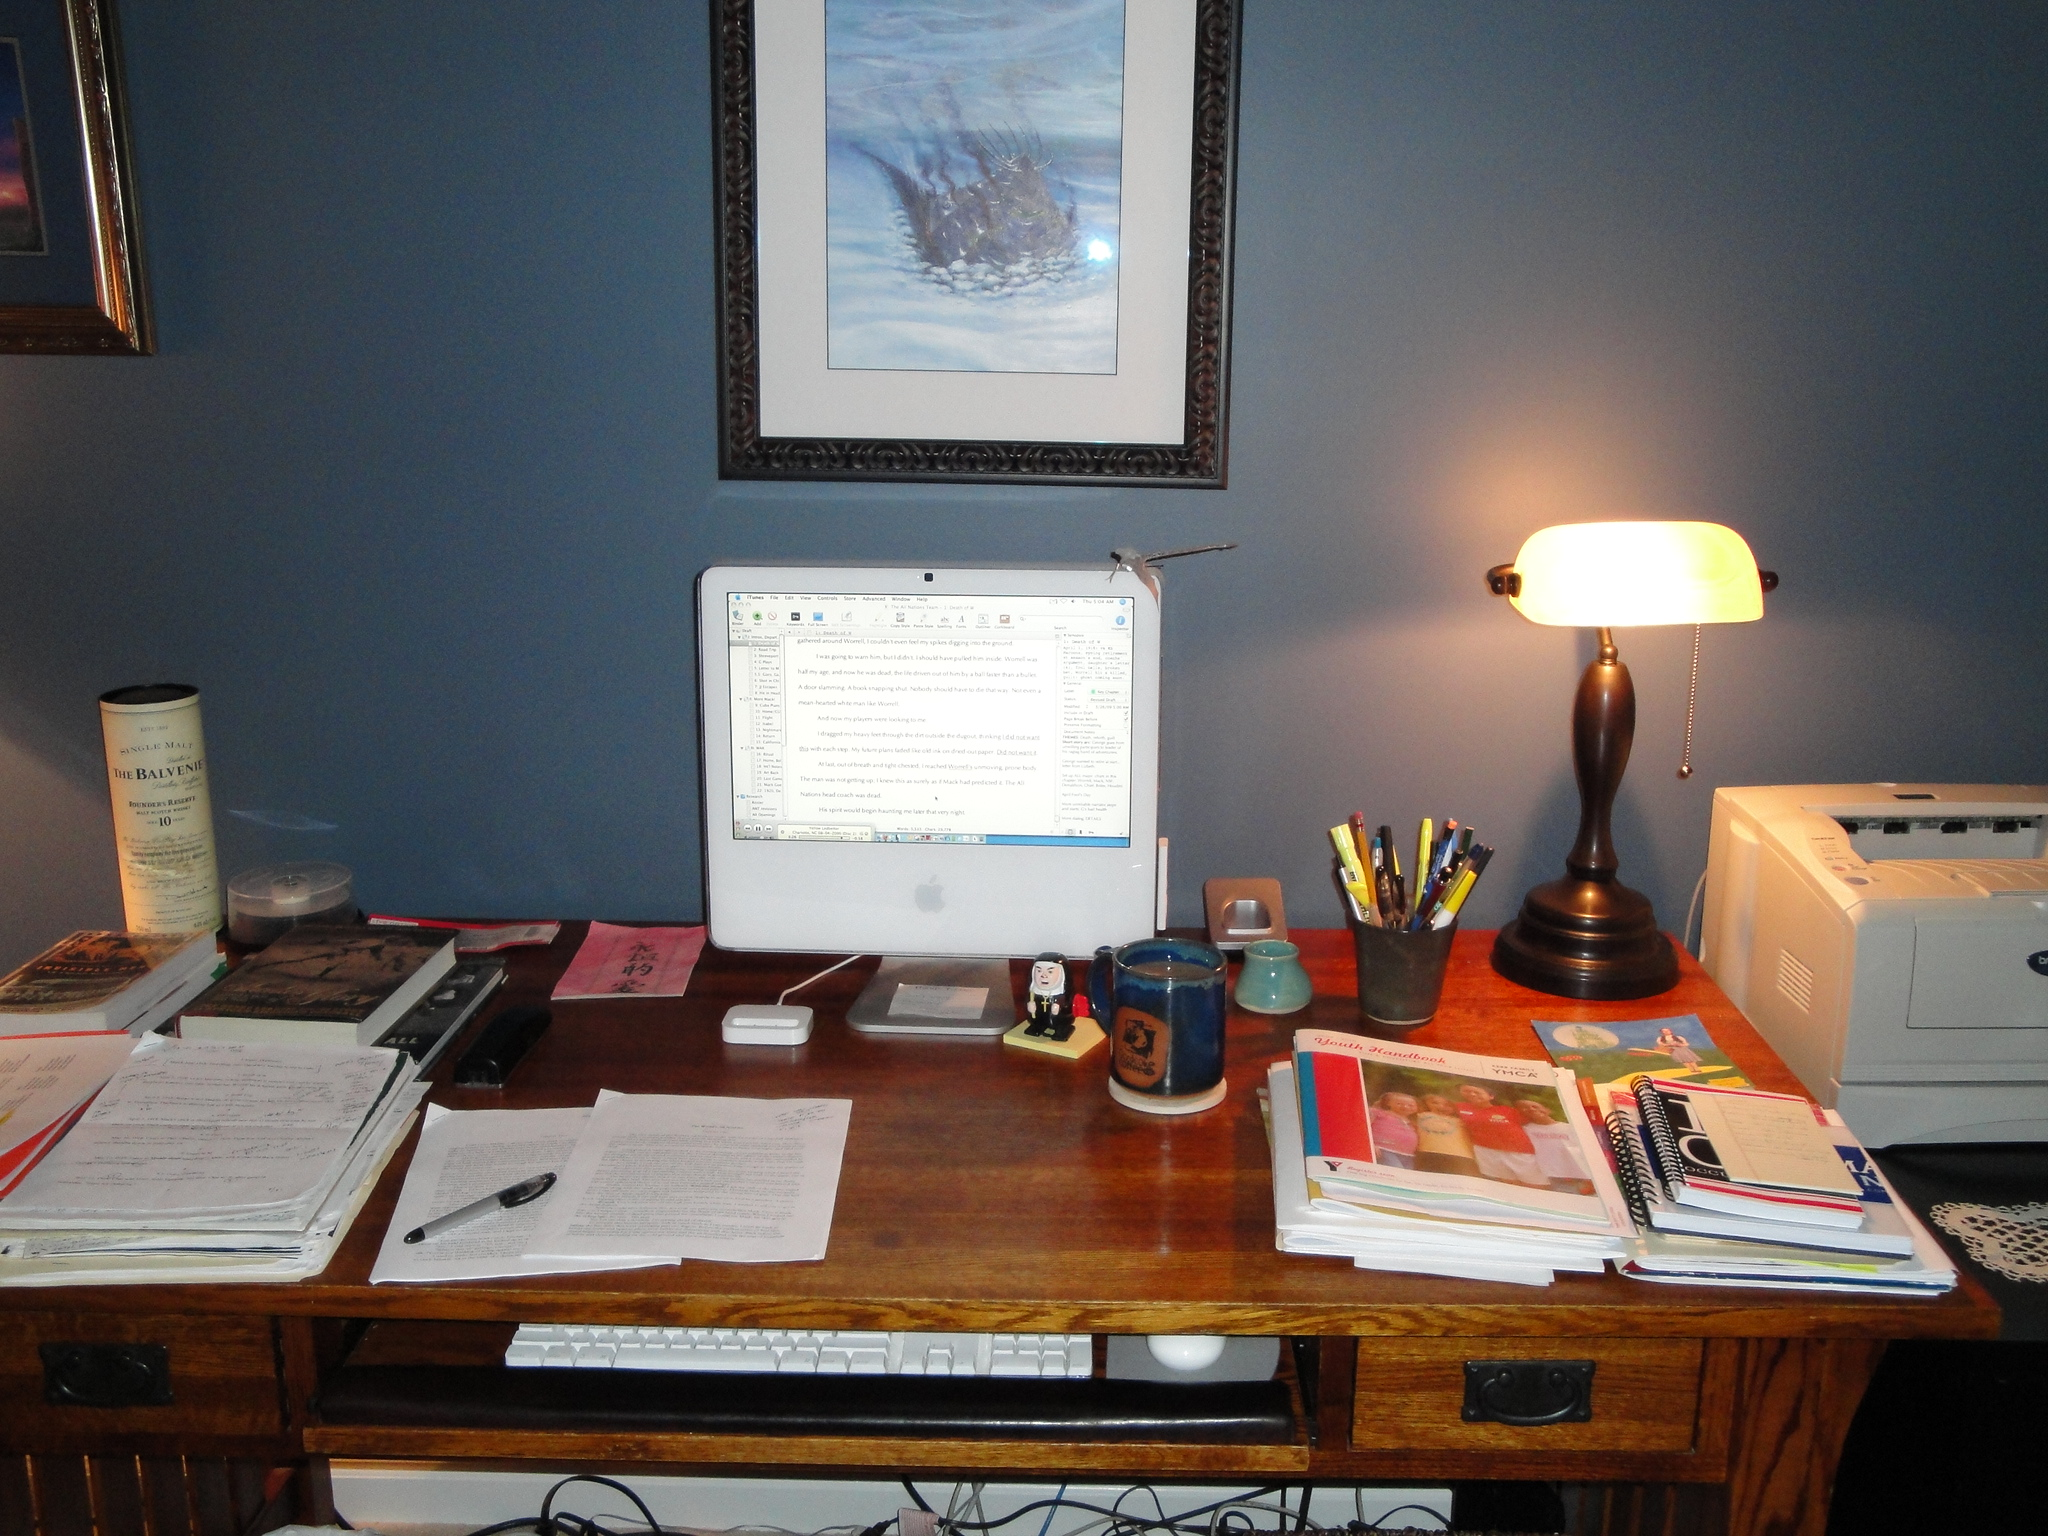 The Writing Area, March 26, 2009